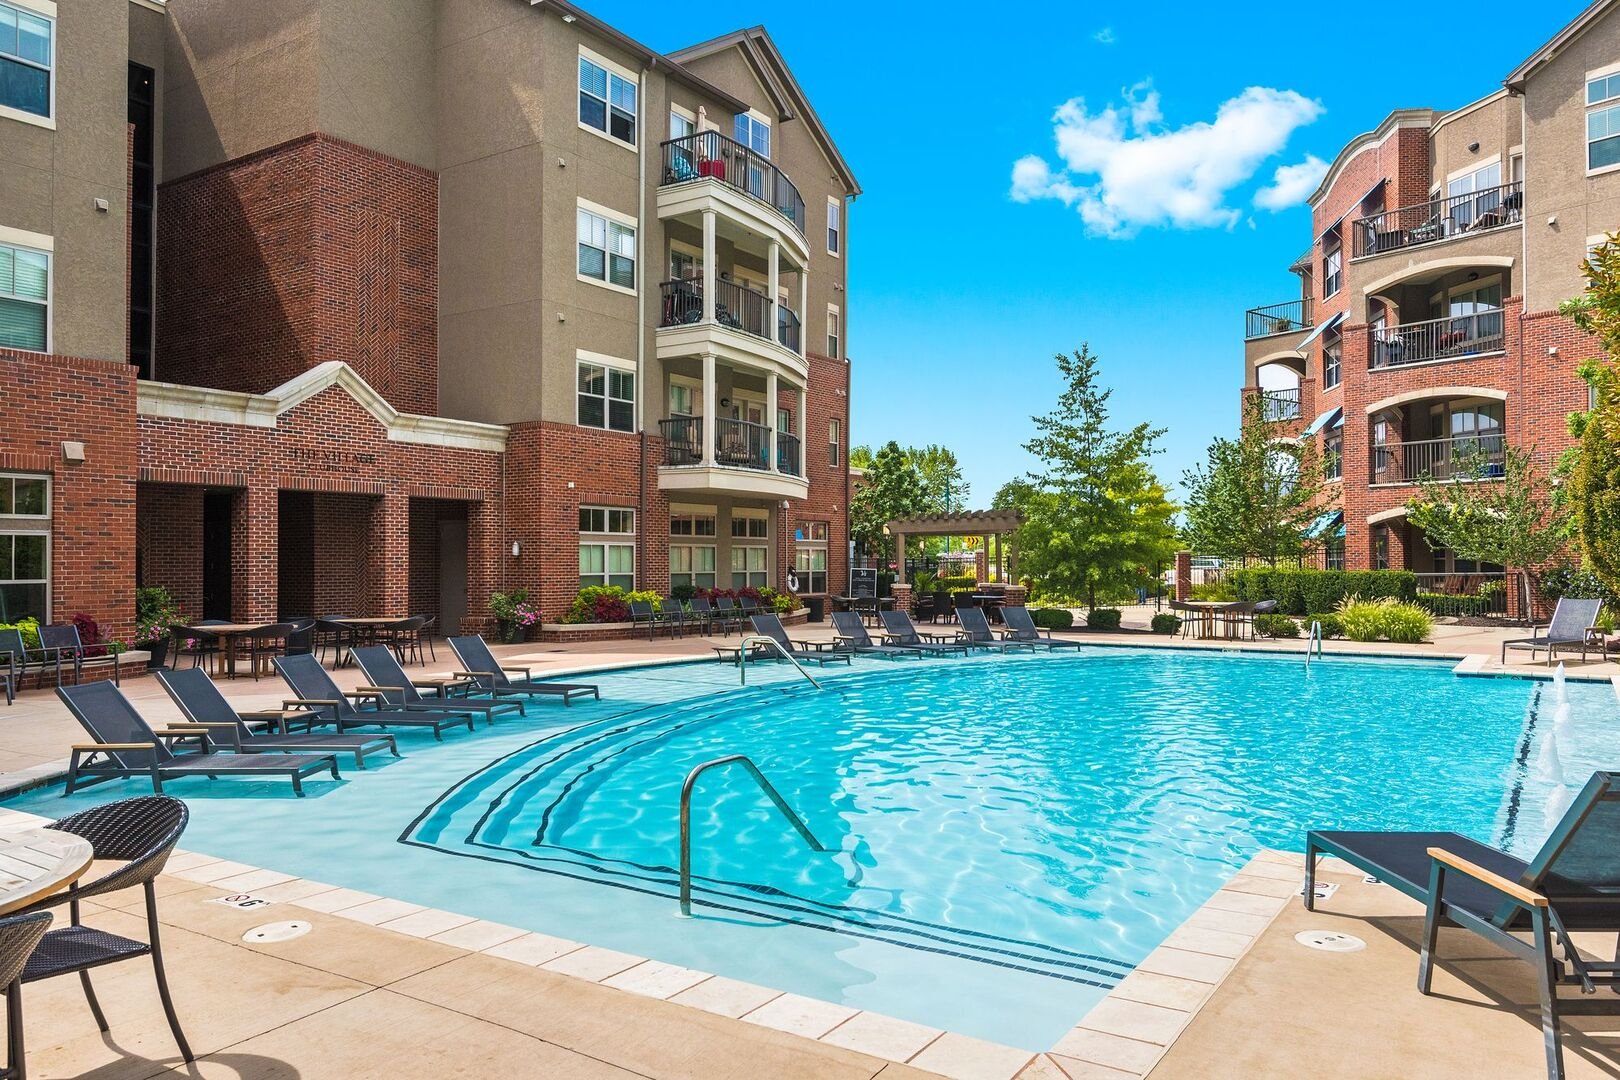 Luxury Apartments In Overland Park Ks Village Mission Farms